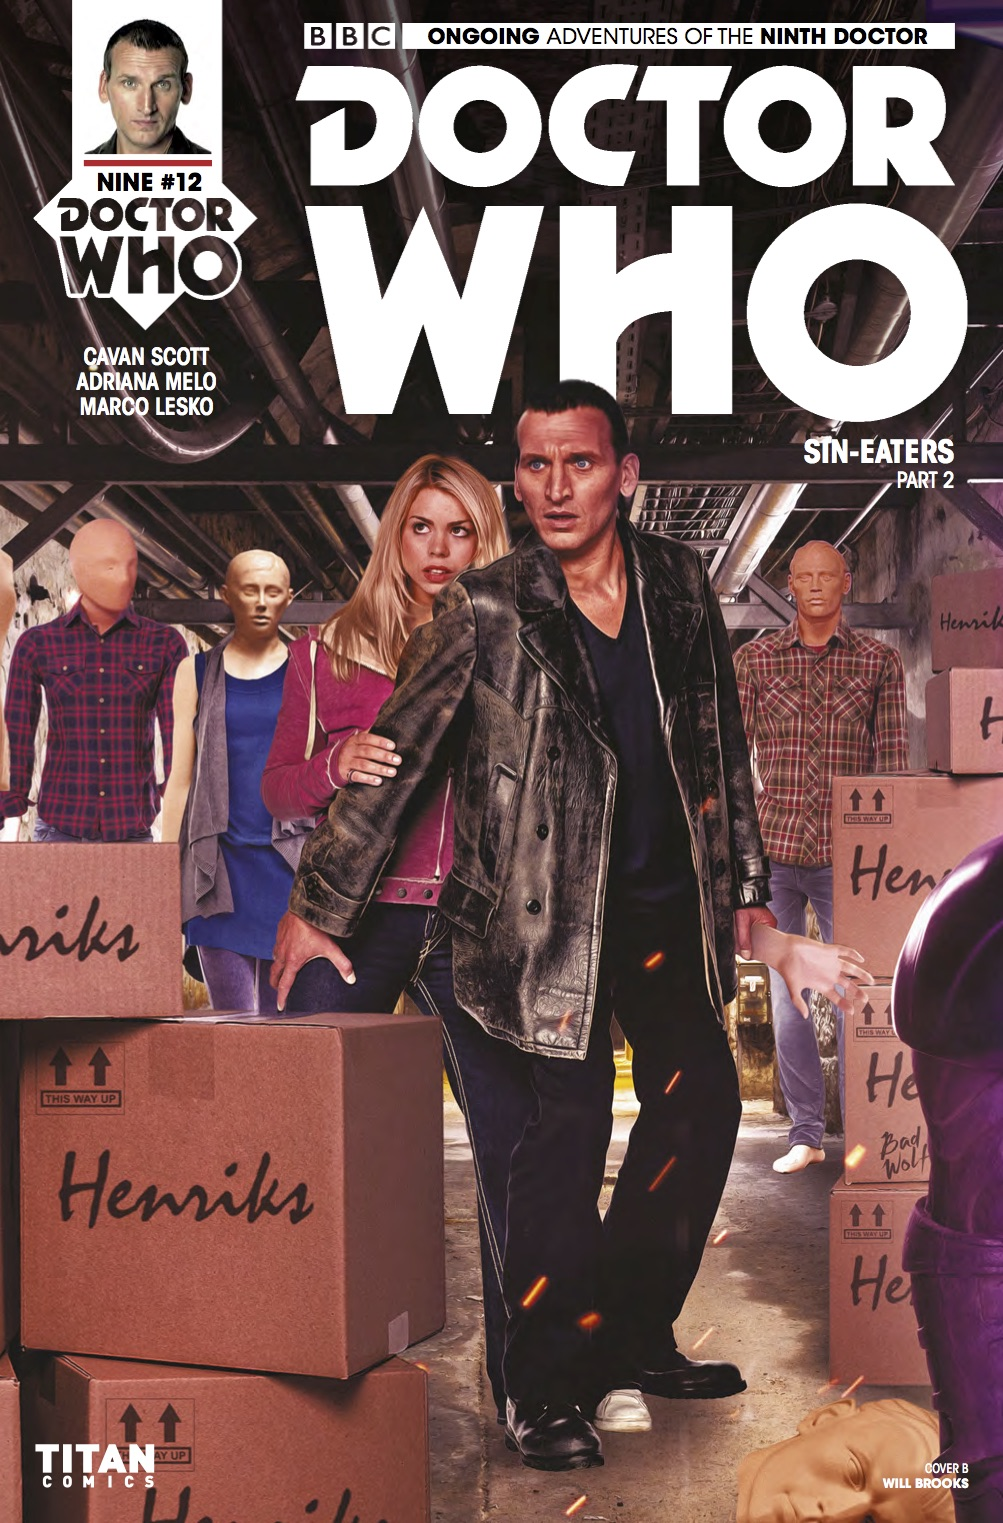 DOCTOR WHO: NINTH DOCTOR #12 Cover B (Credit: Titan WILL BROOKS)